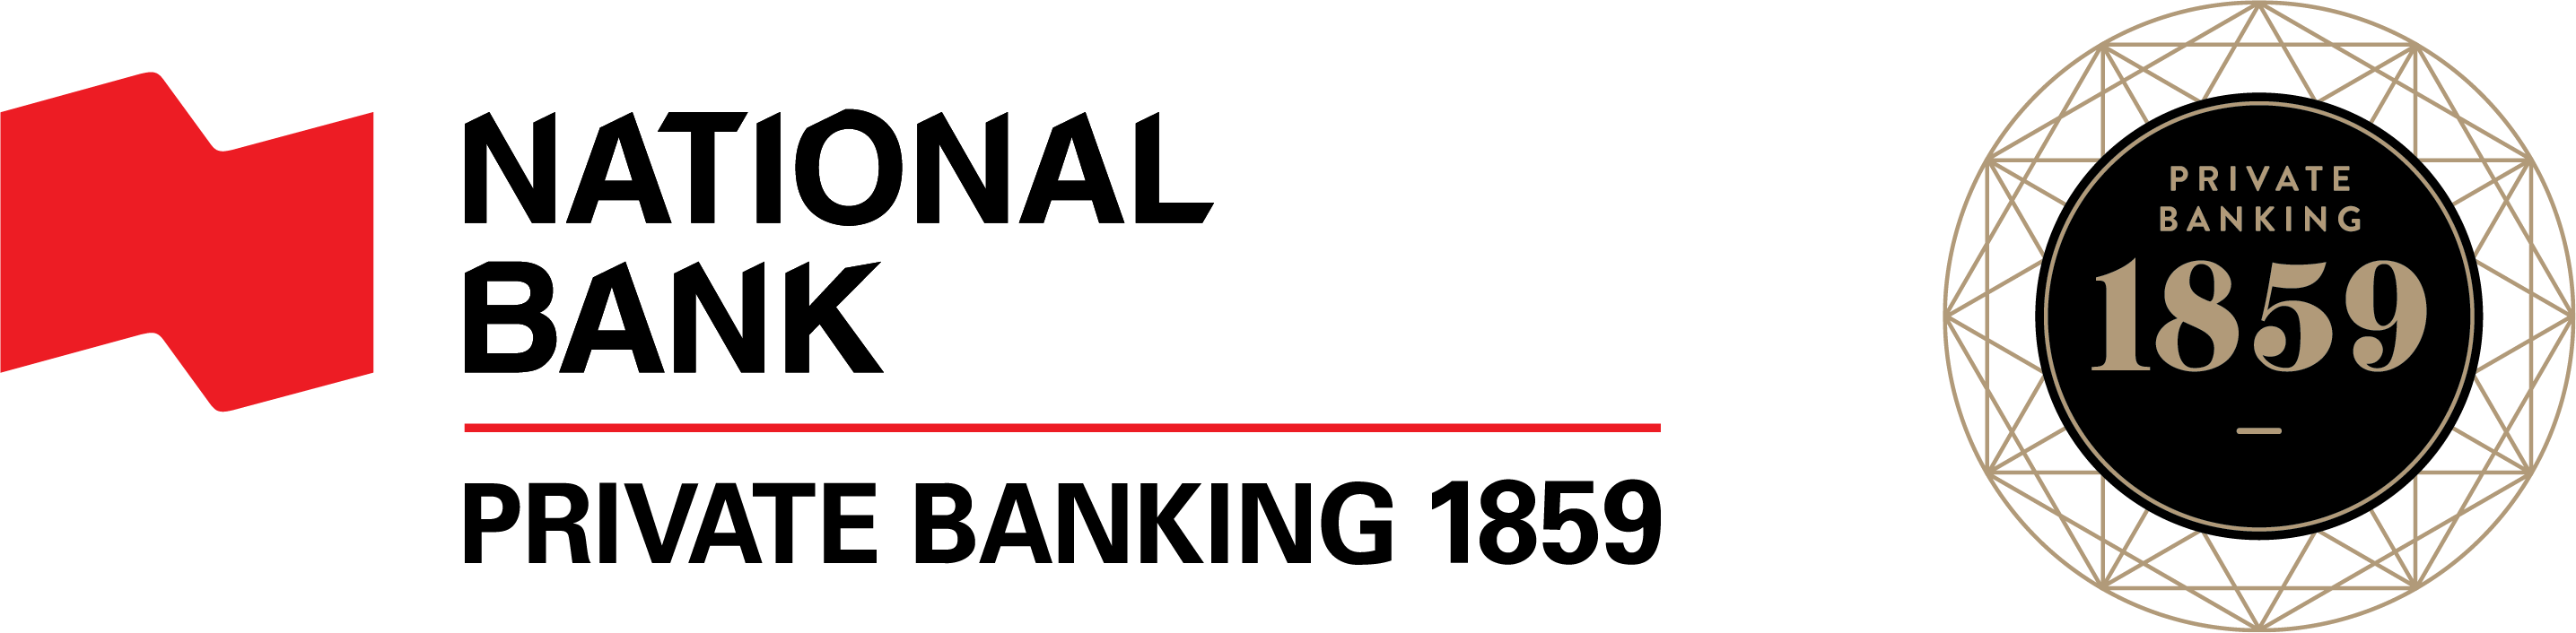 National Bank, Private Banking 1859